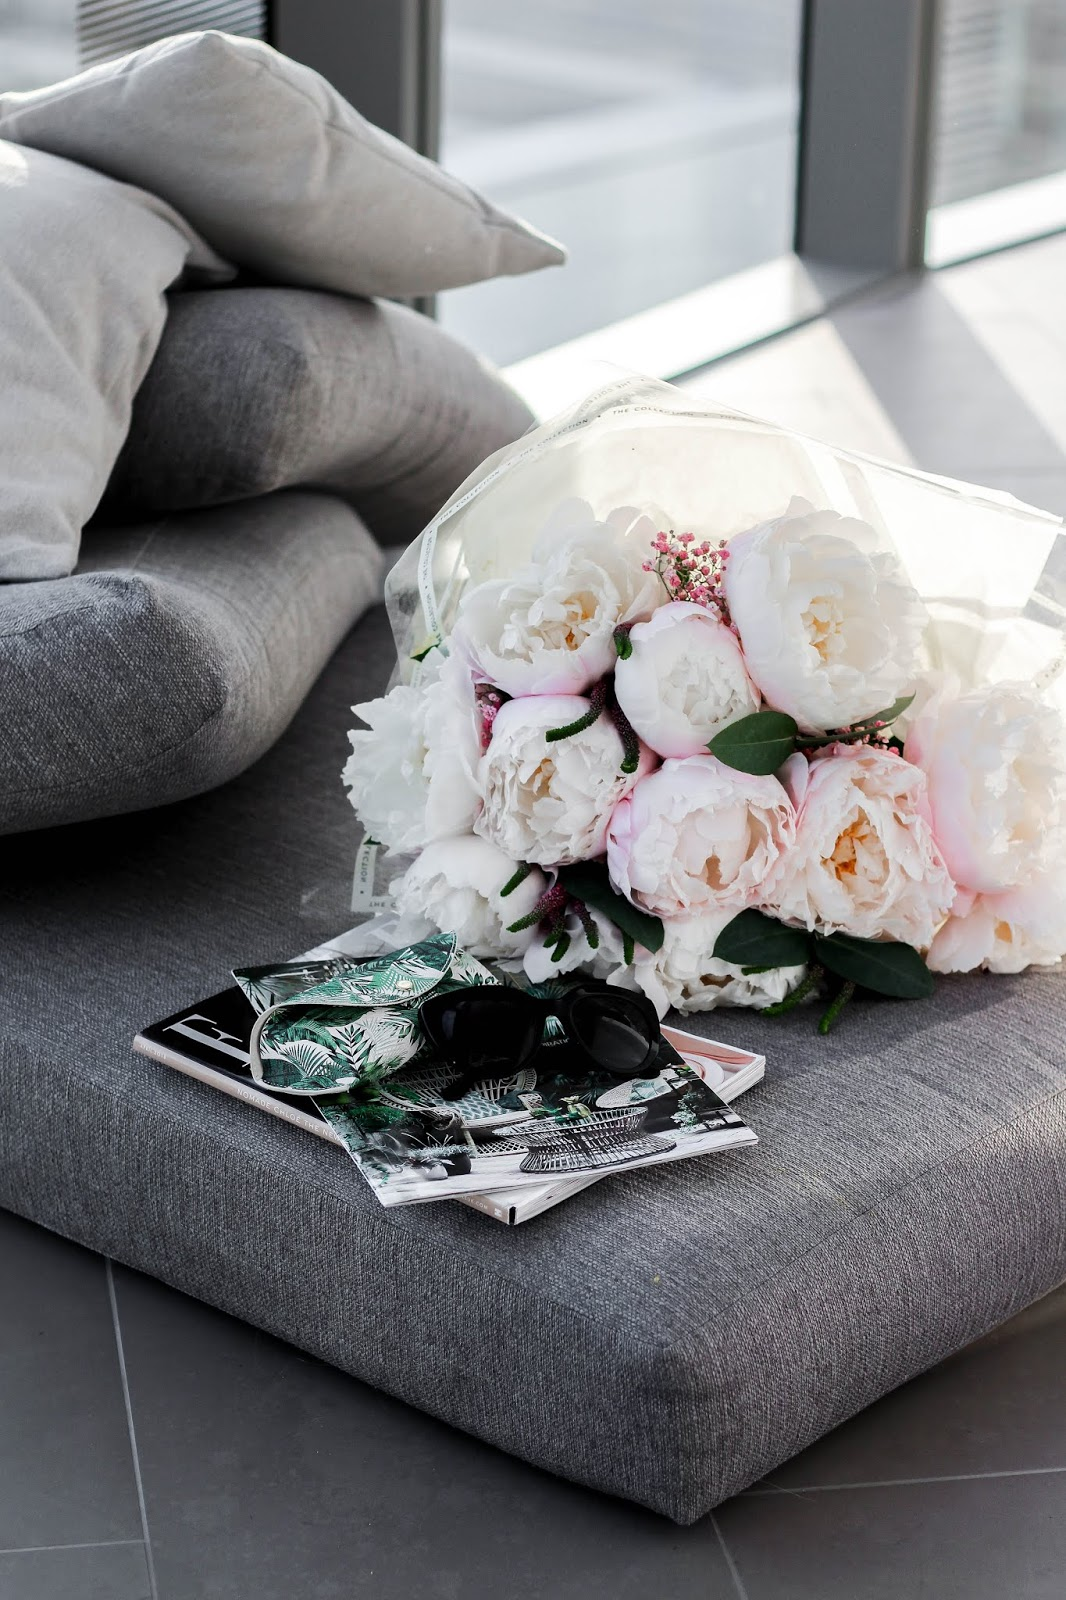 M&S Summer Bouquet Pink White Peonies 2018